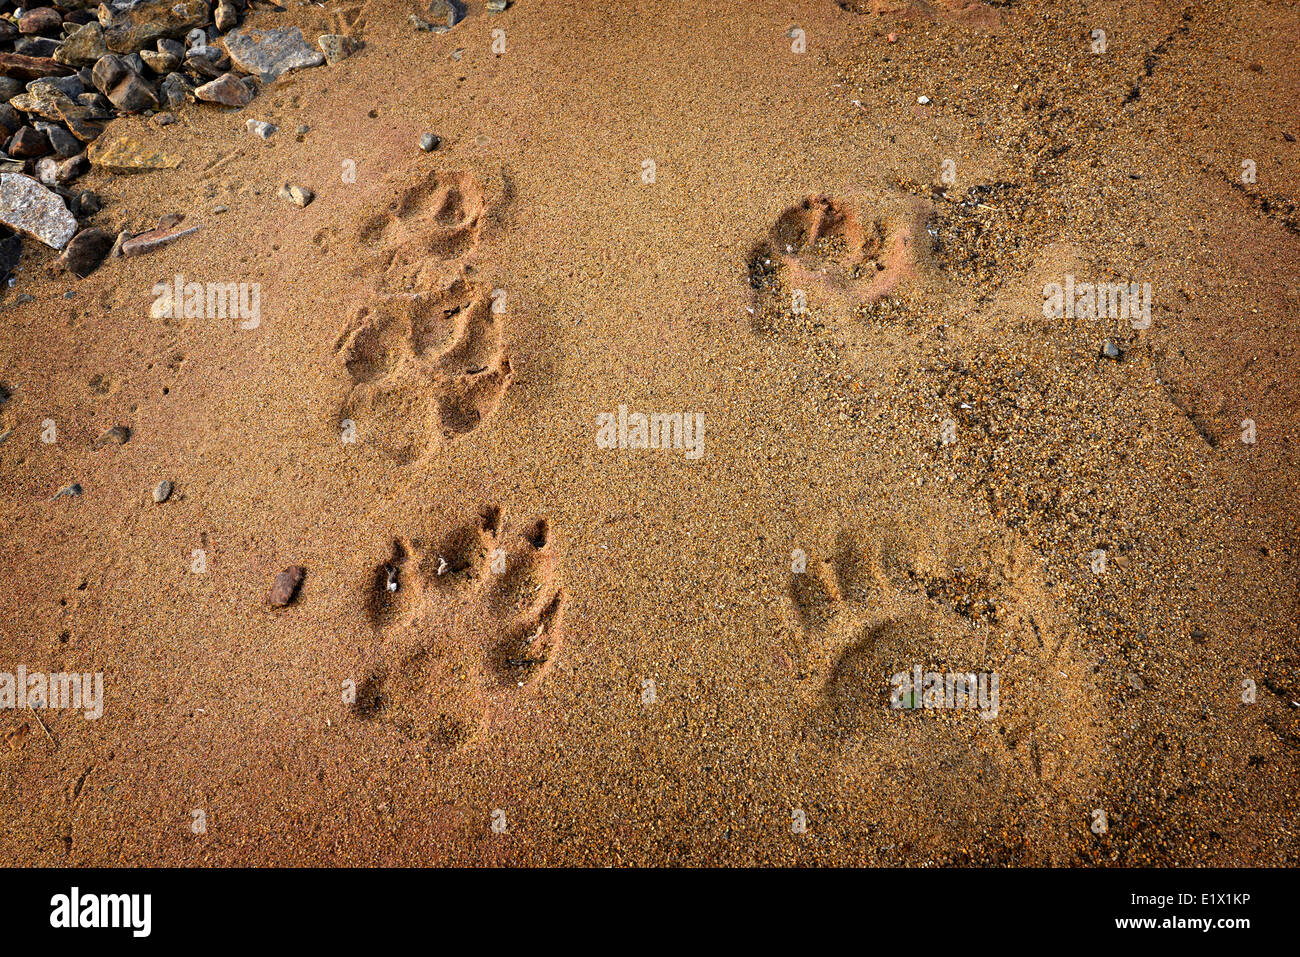 Animal foot prints in the sand - Stock Image